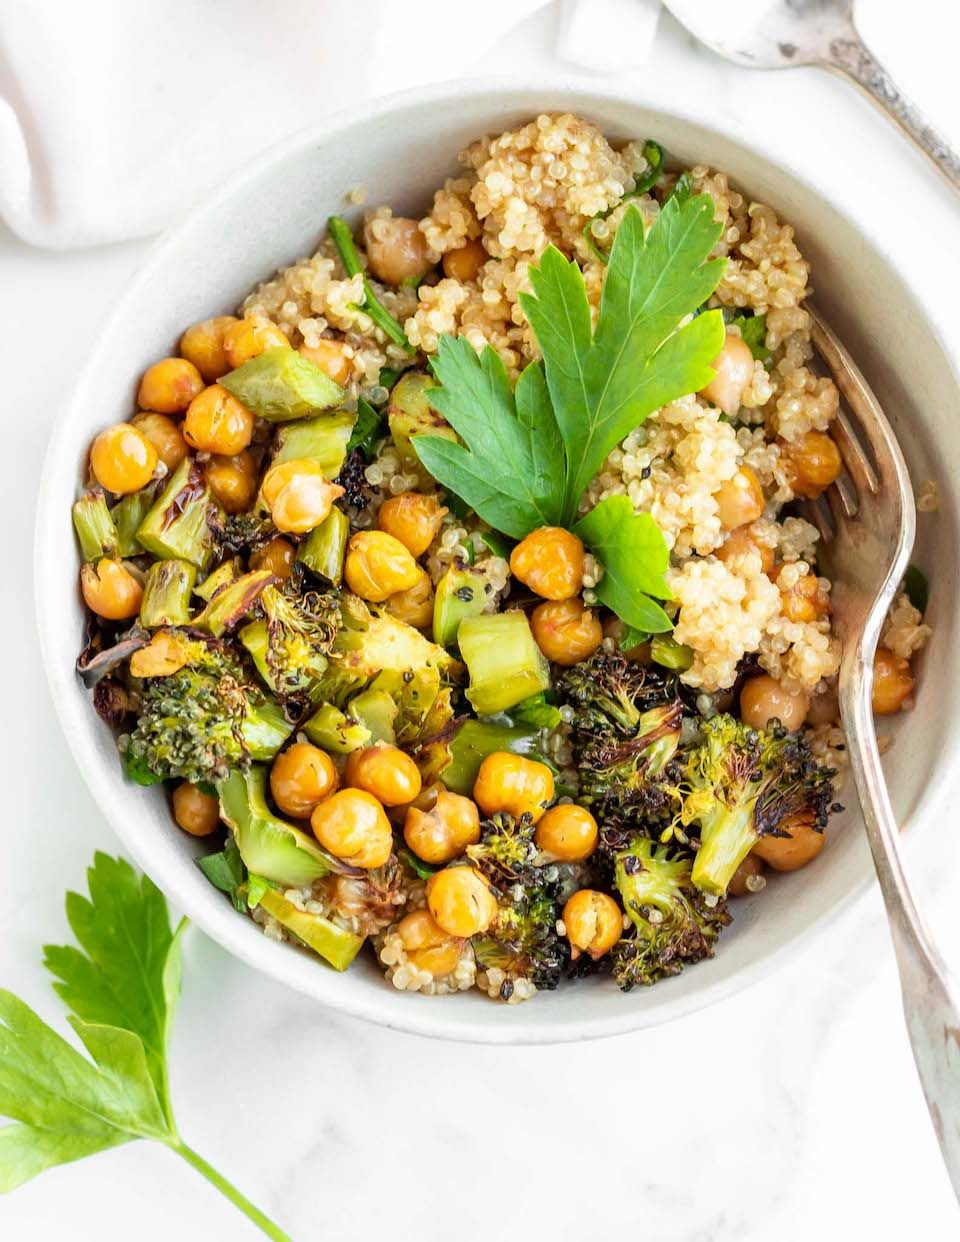 Roasted Broccoli Chickpea Quinoa Bowls Always Nourished Recipe In 2020 Roasted Broccoli Delicious Meal Prep Healthy Dinner Recipes Easy